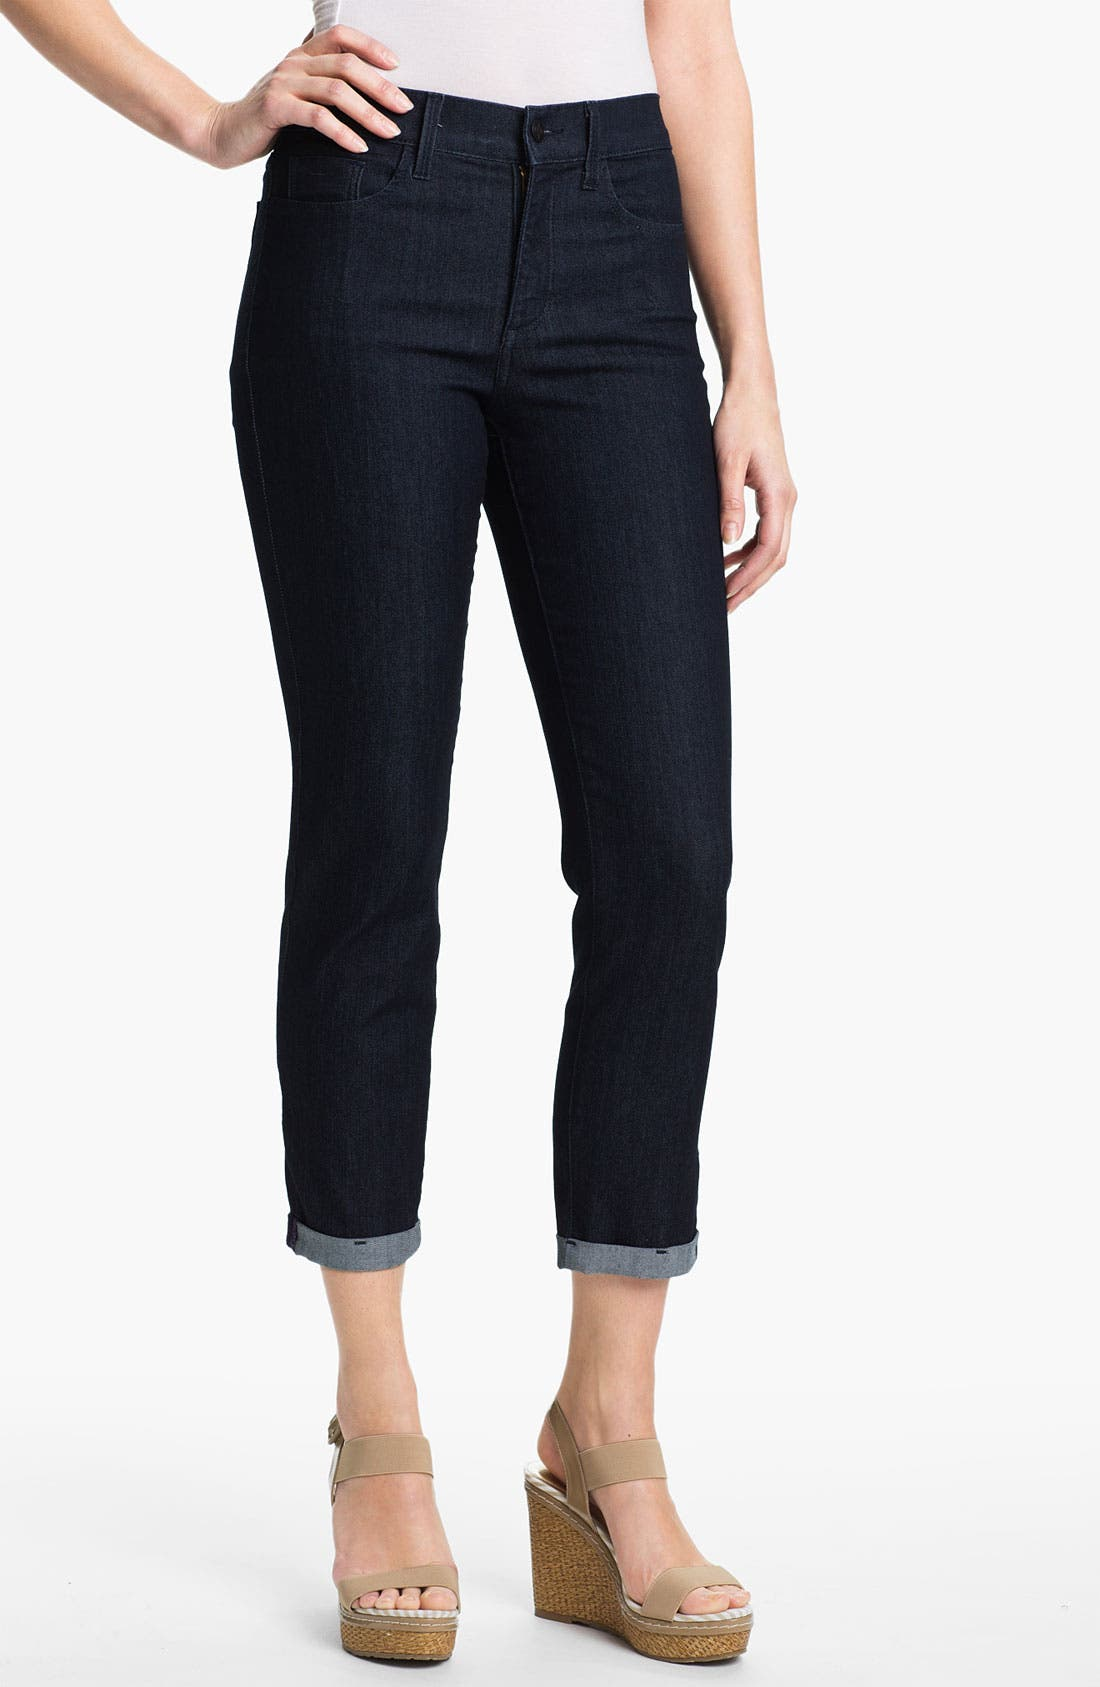 Alternate Image 1 Selected - NYDJ 'Kendall' Cuffed Crop Stretch Jeans